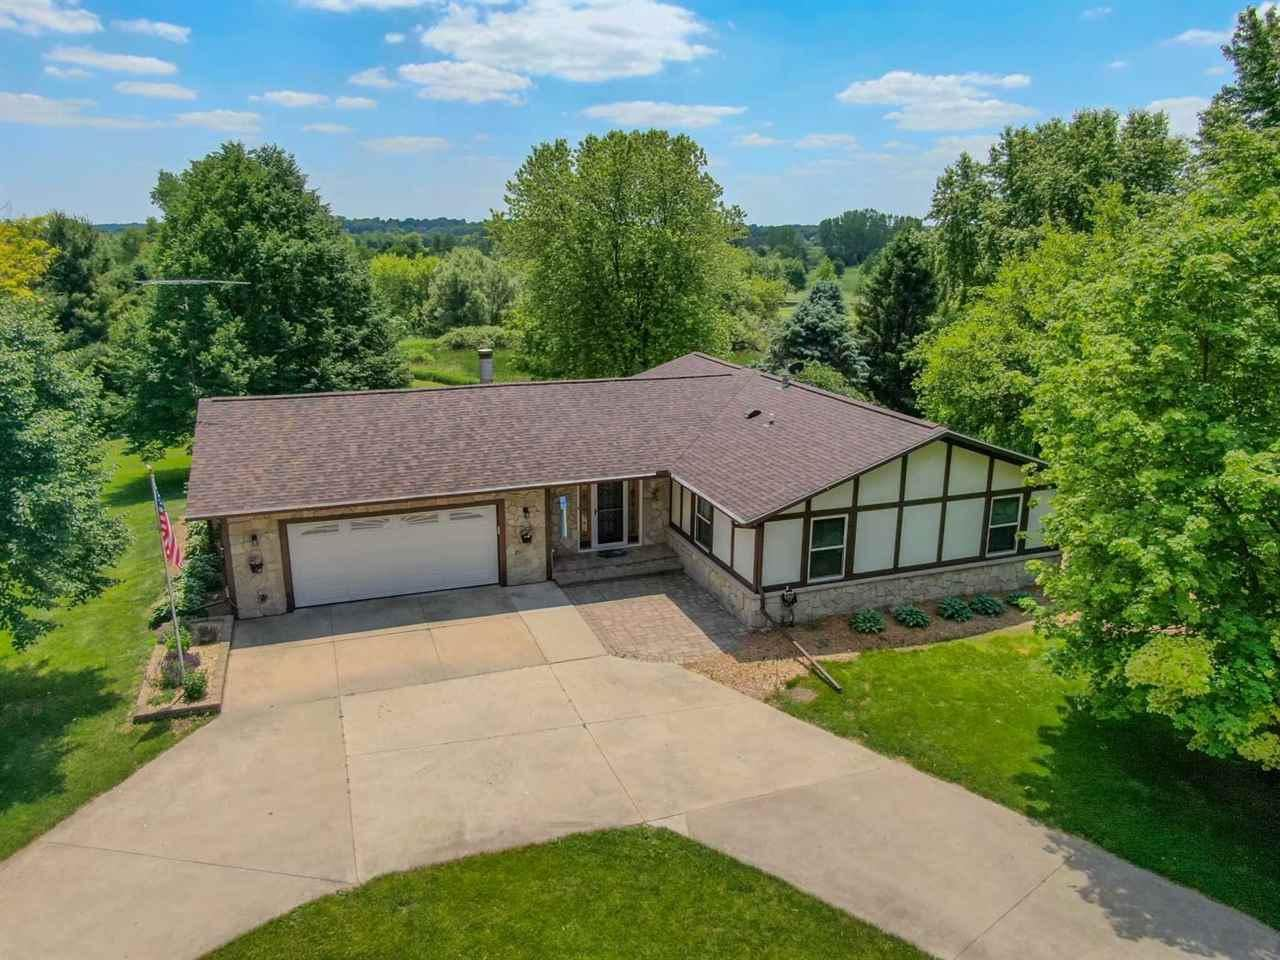 4855 Marick Ct, Cottage Grove, WI 53527 - MLS#: 1881511